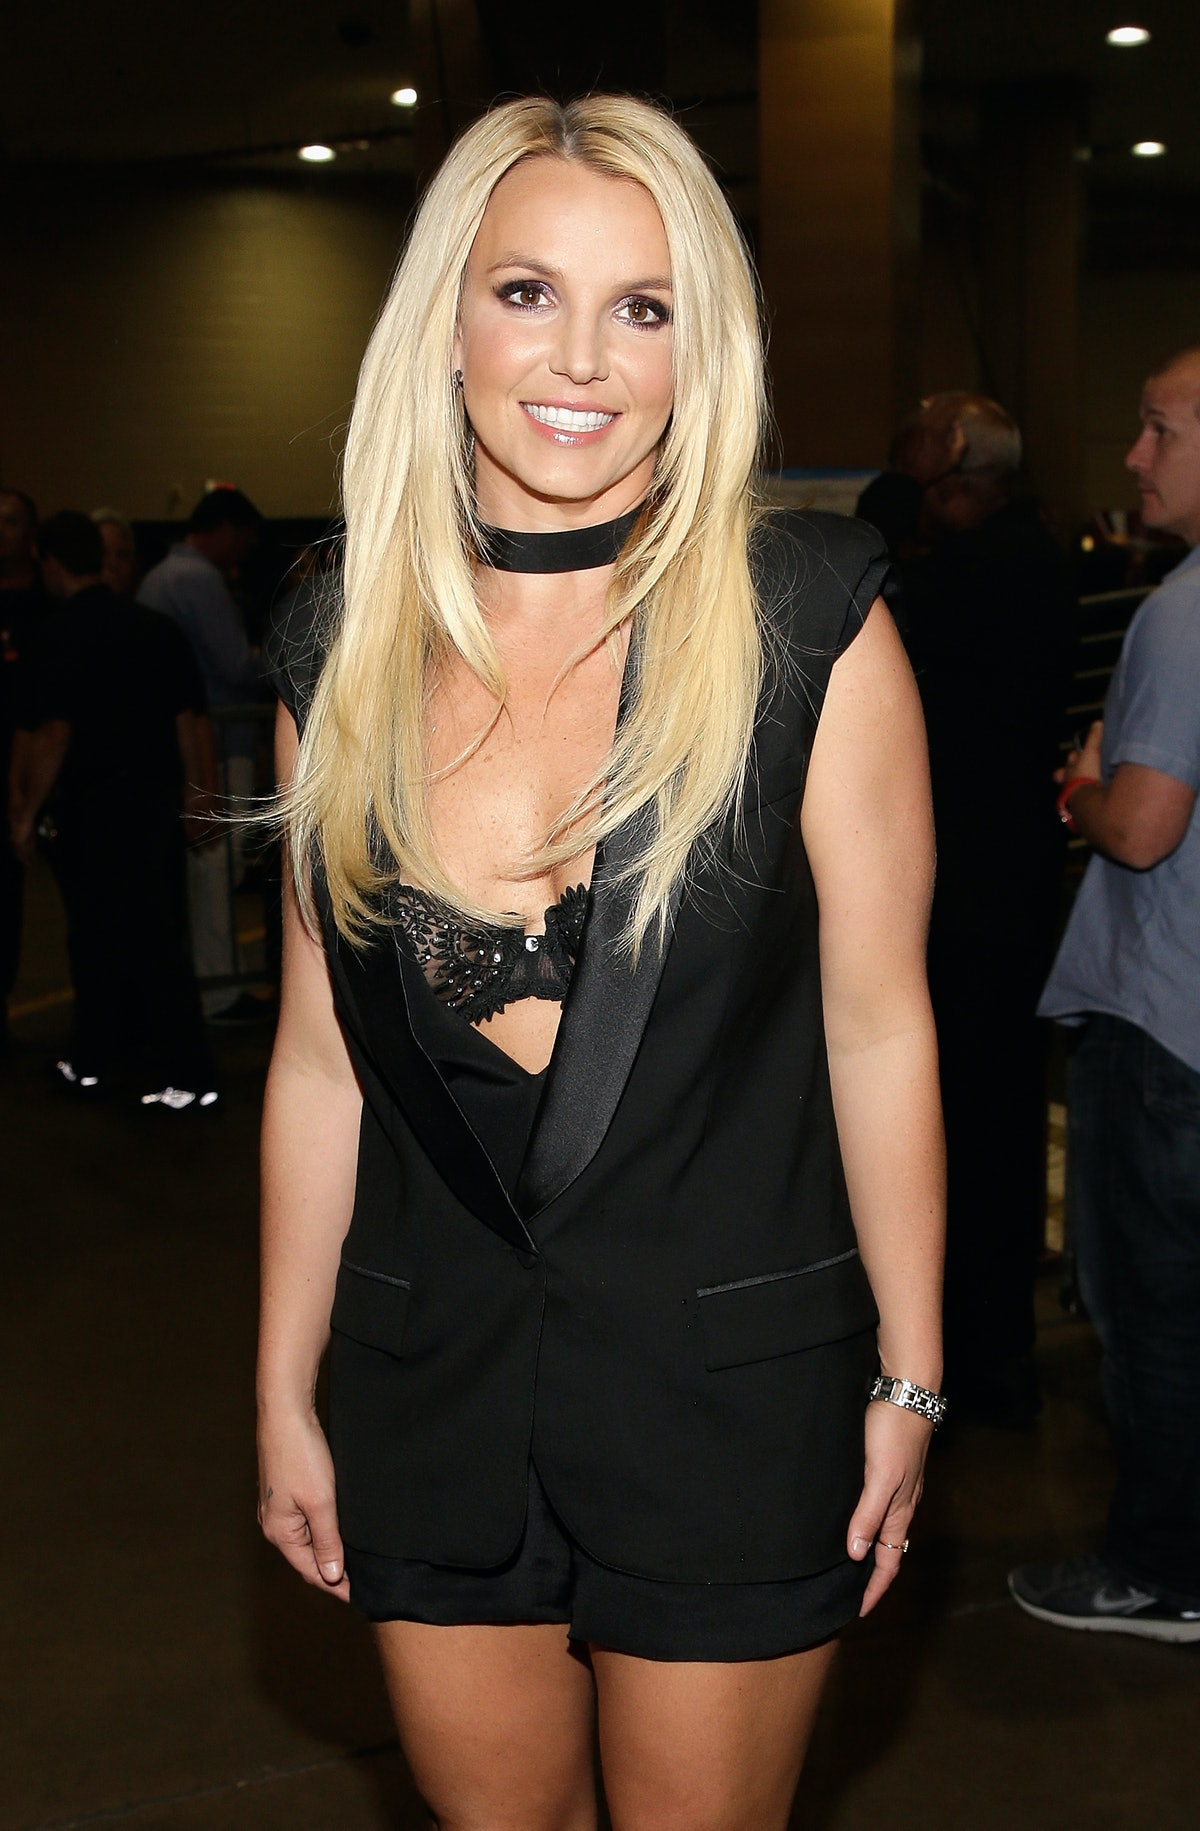 Britney Spears, shown here smiling in a black dress in Las Vegas, is so over the paparazzi.